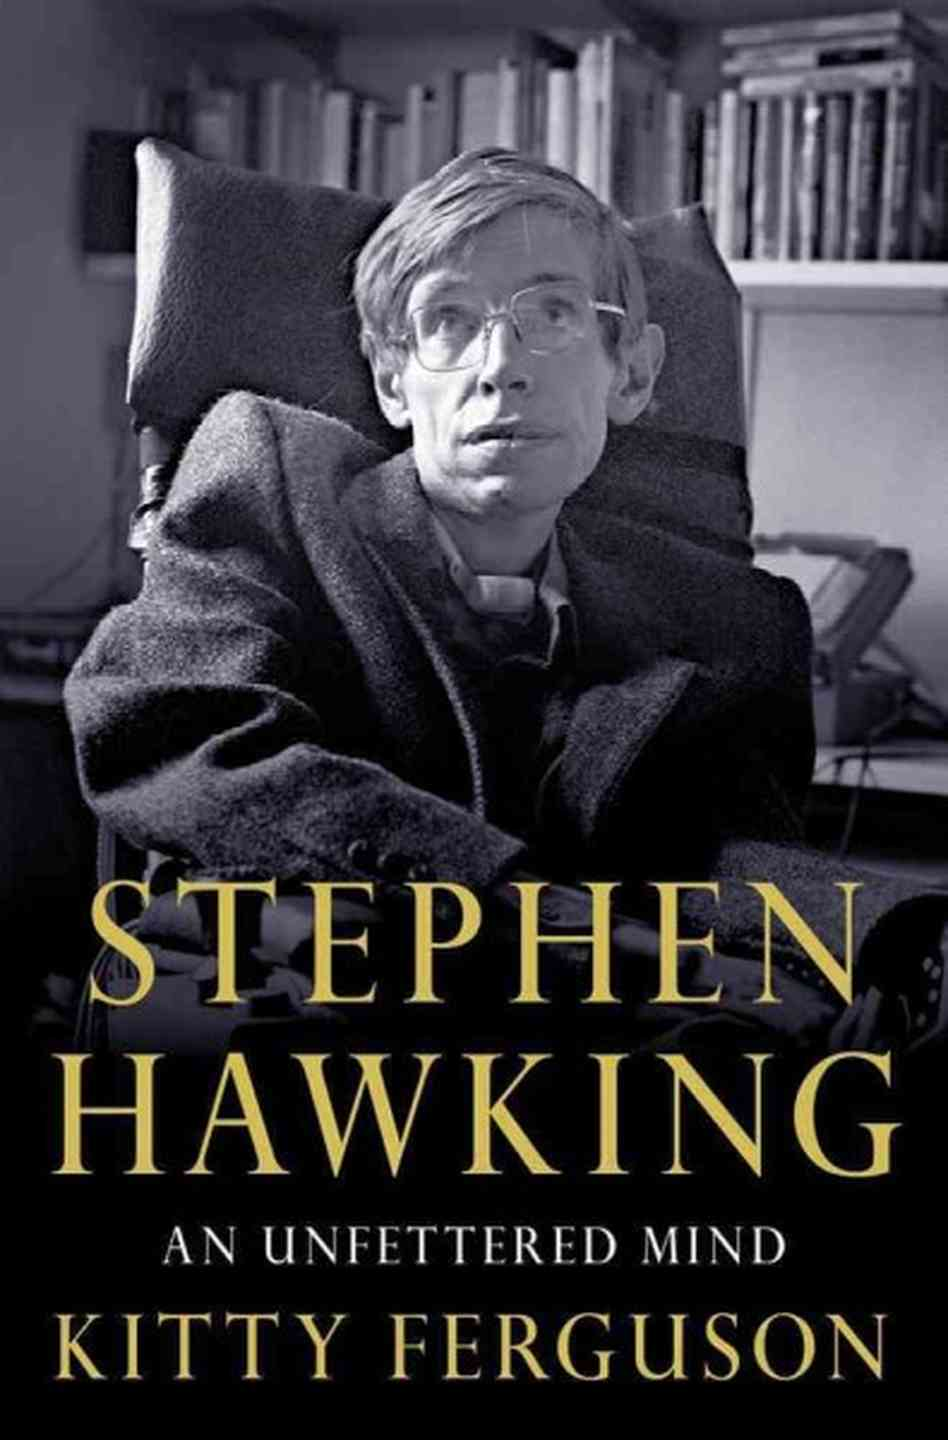 a biography of steven hawking Timothy hawking is the third and youngest child of the award-winning english theoretical physicist, cosmologist, author and researcher, stephen hawking and his former wife, jane beryl hawking who is an english author and educator.